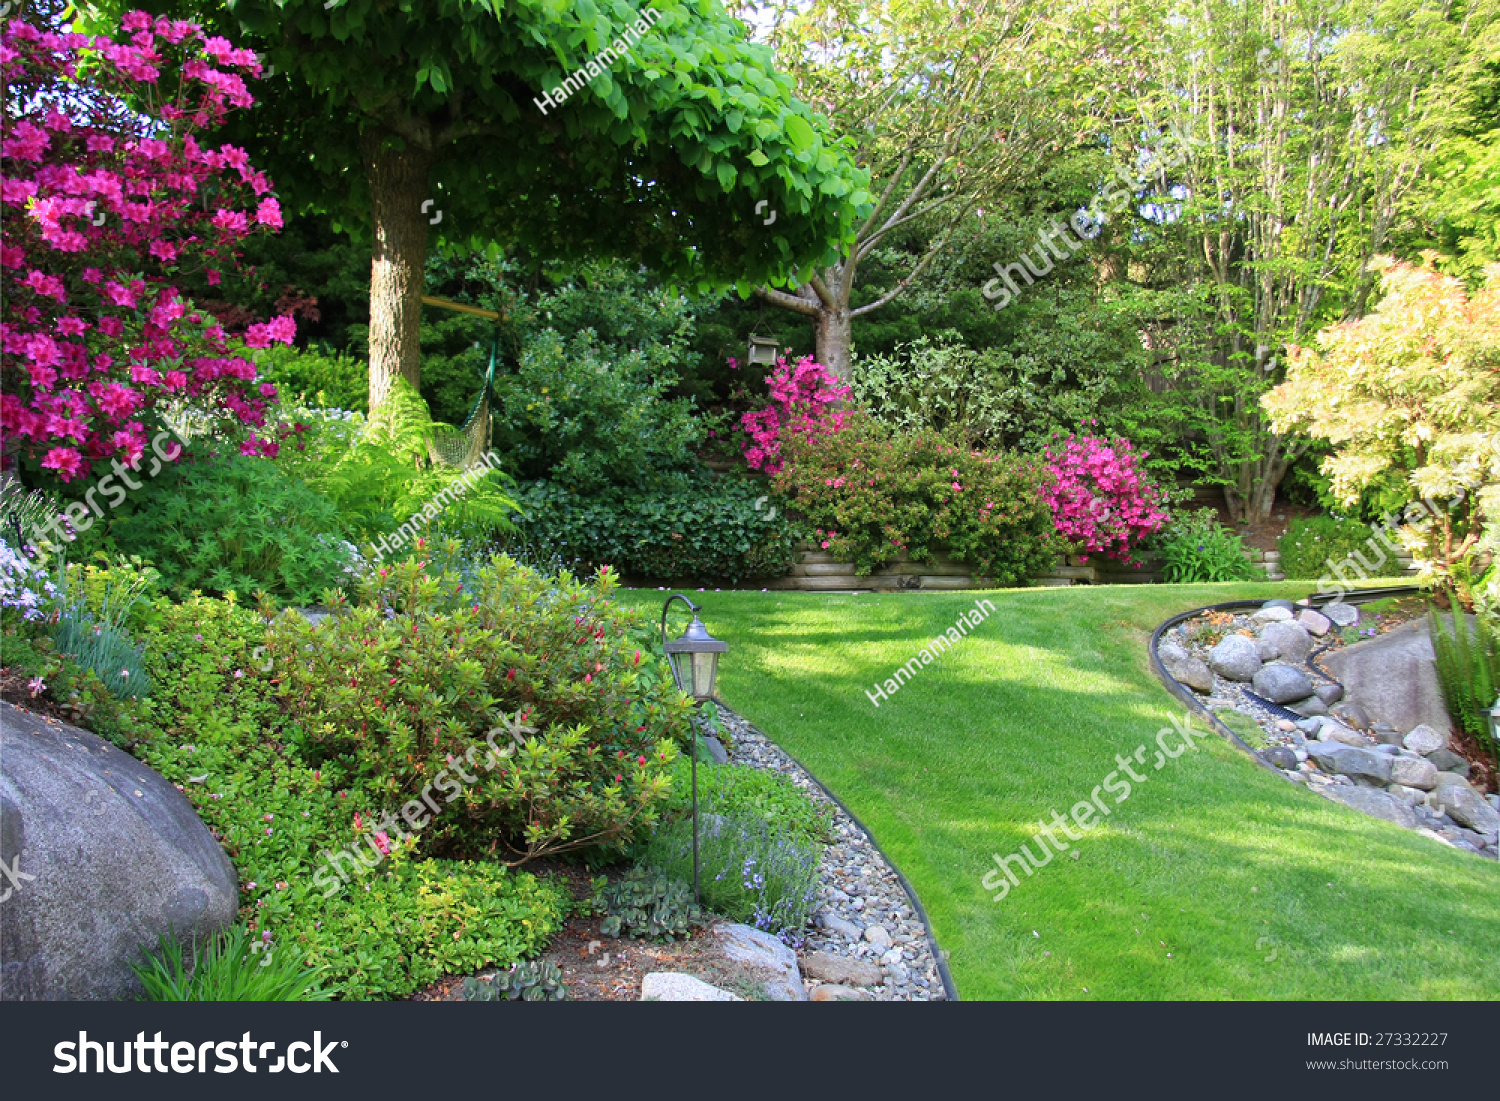 Beautiful park garden in spring stock photo 27332227 for Garden outlay ideas